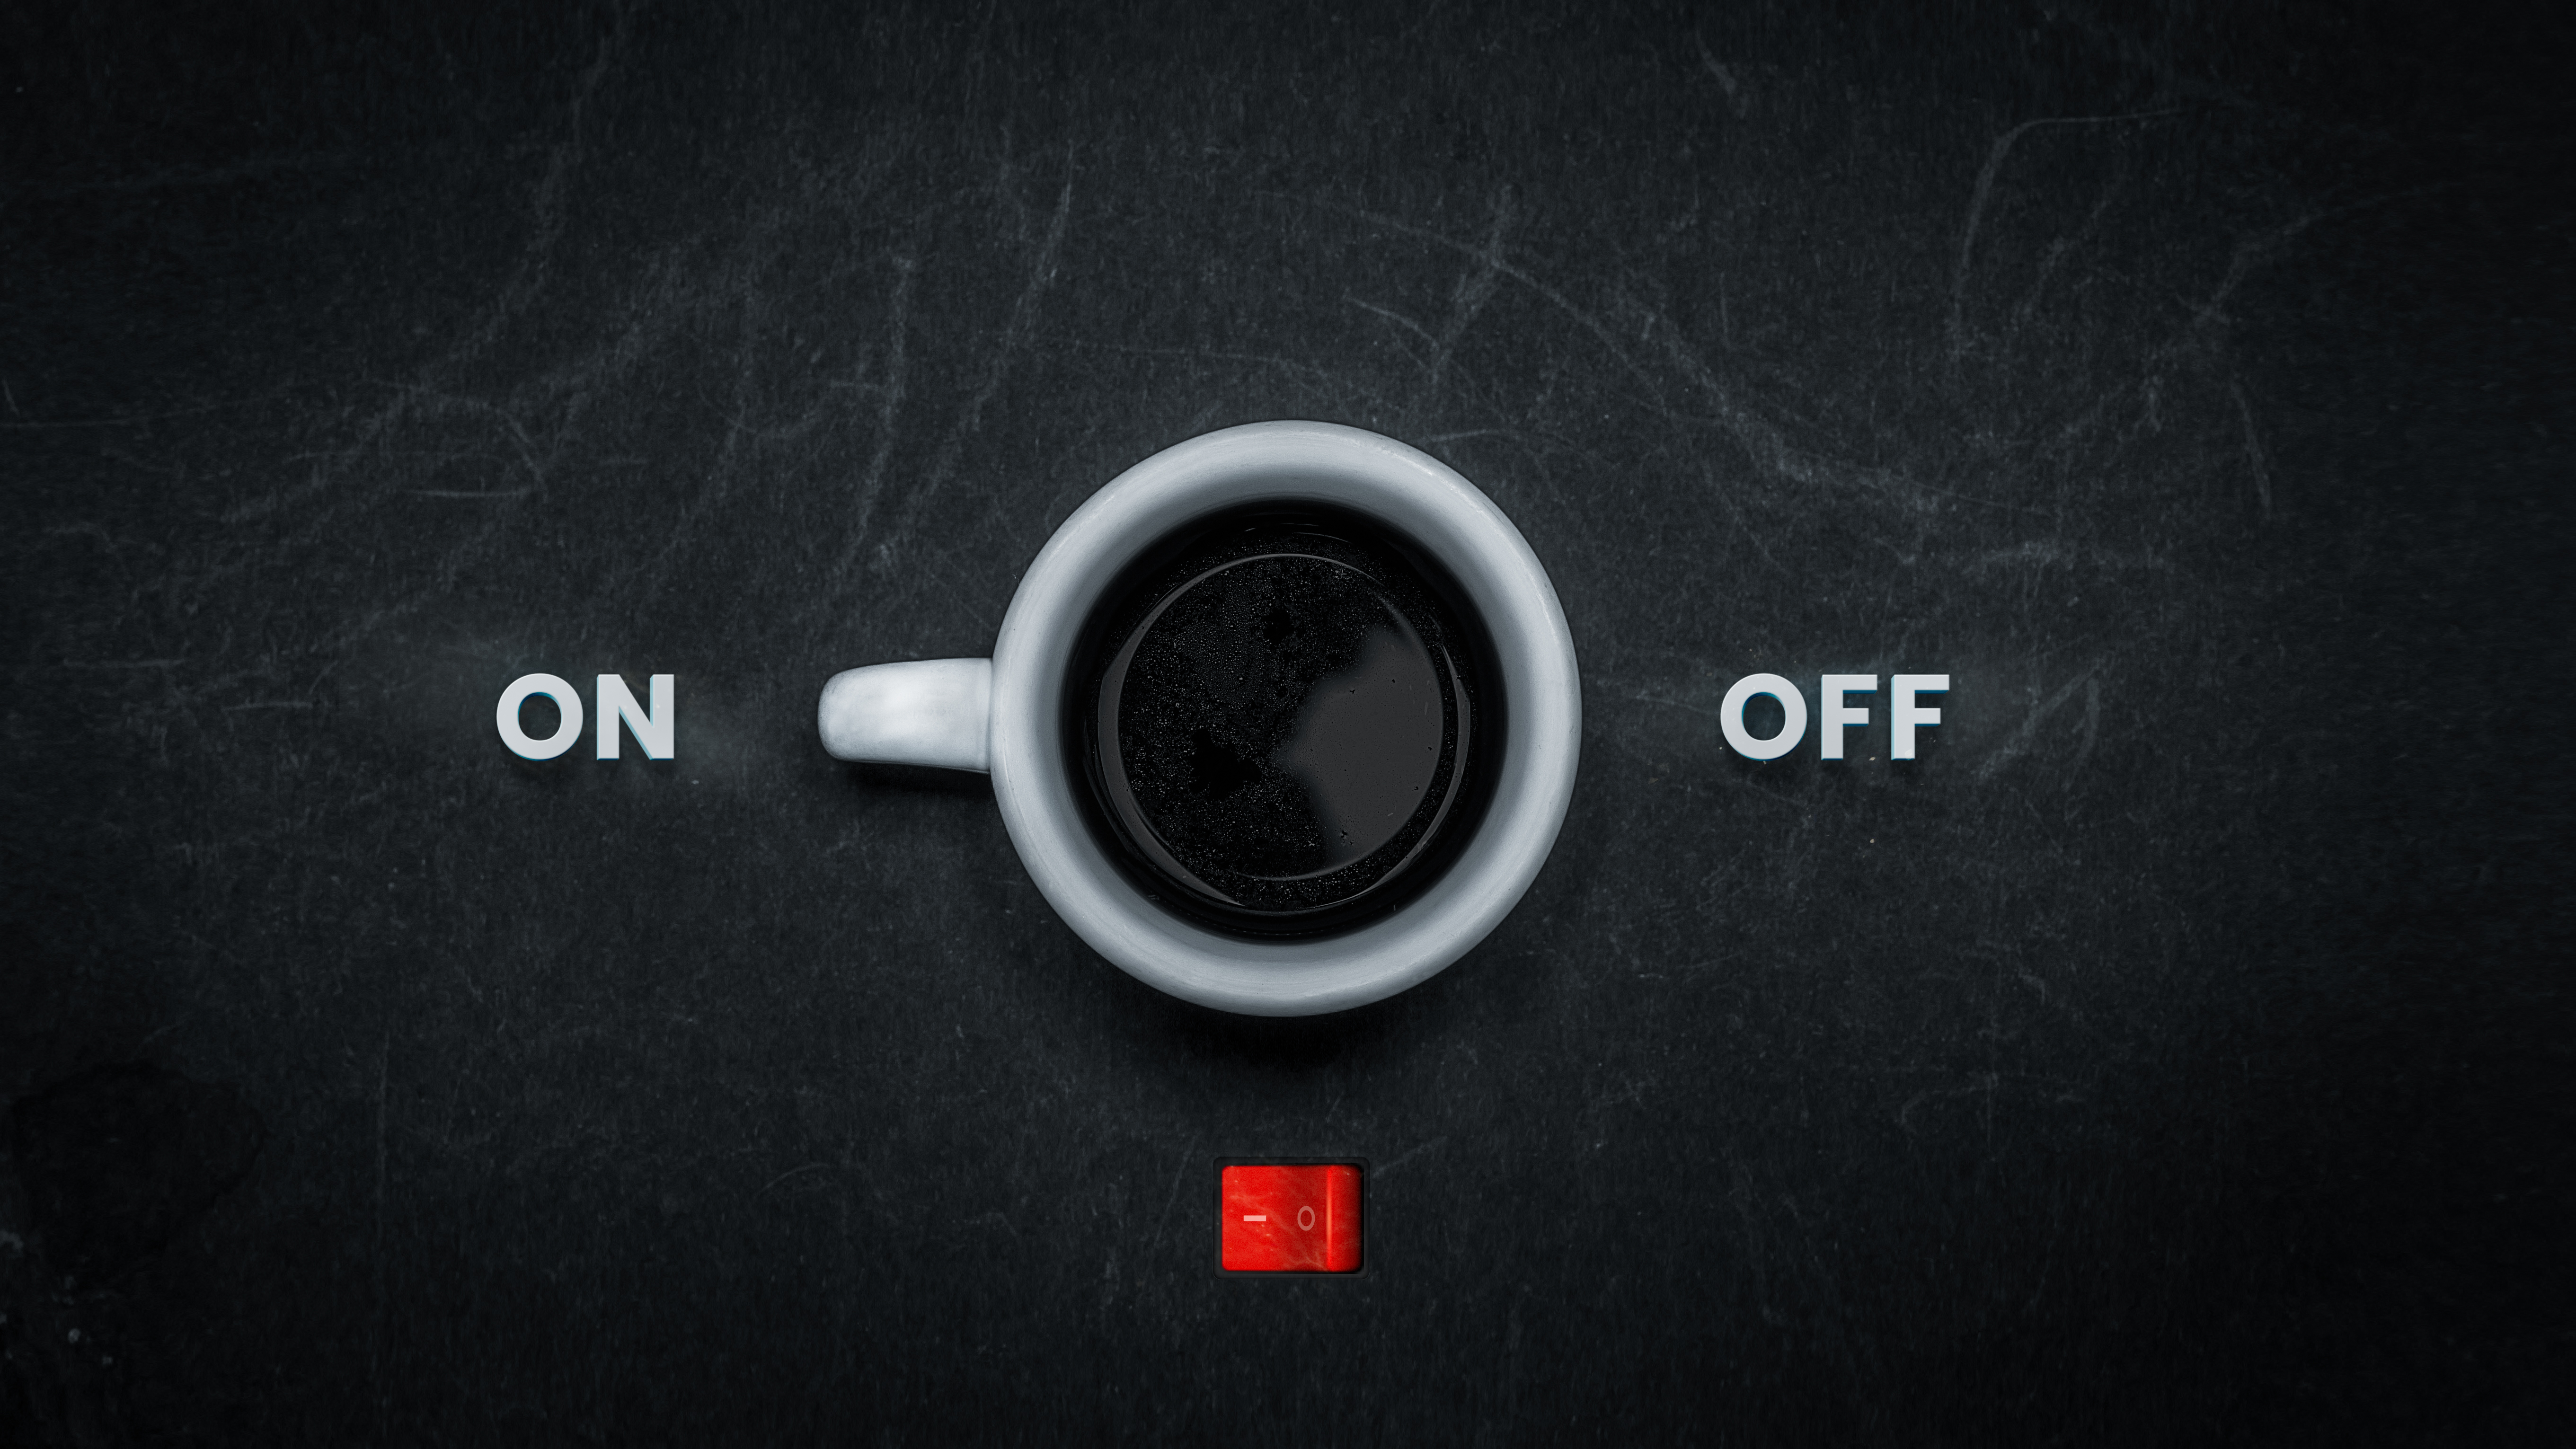 On Off button | Stock Photos